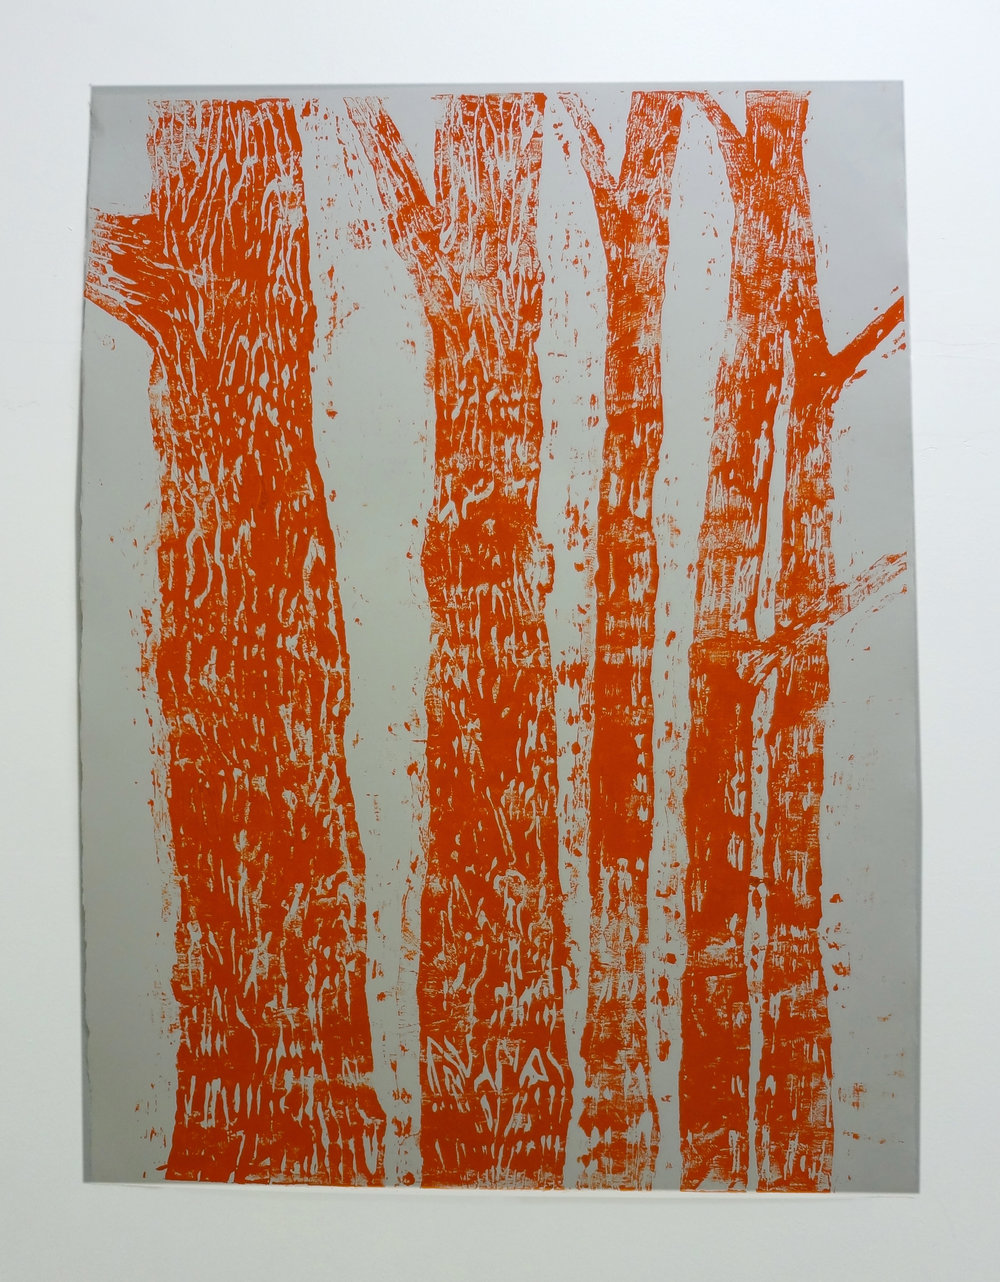 Meghan Gerety  Orange Trees , 2012 blockprint ink on blockprint paper 40 x 30 in.